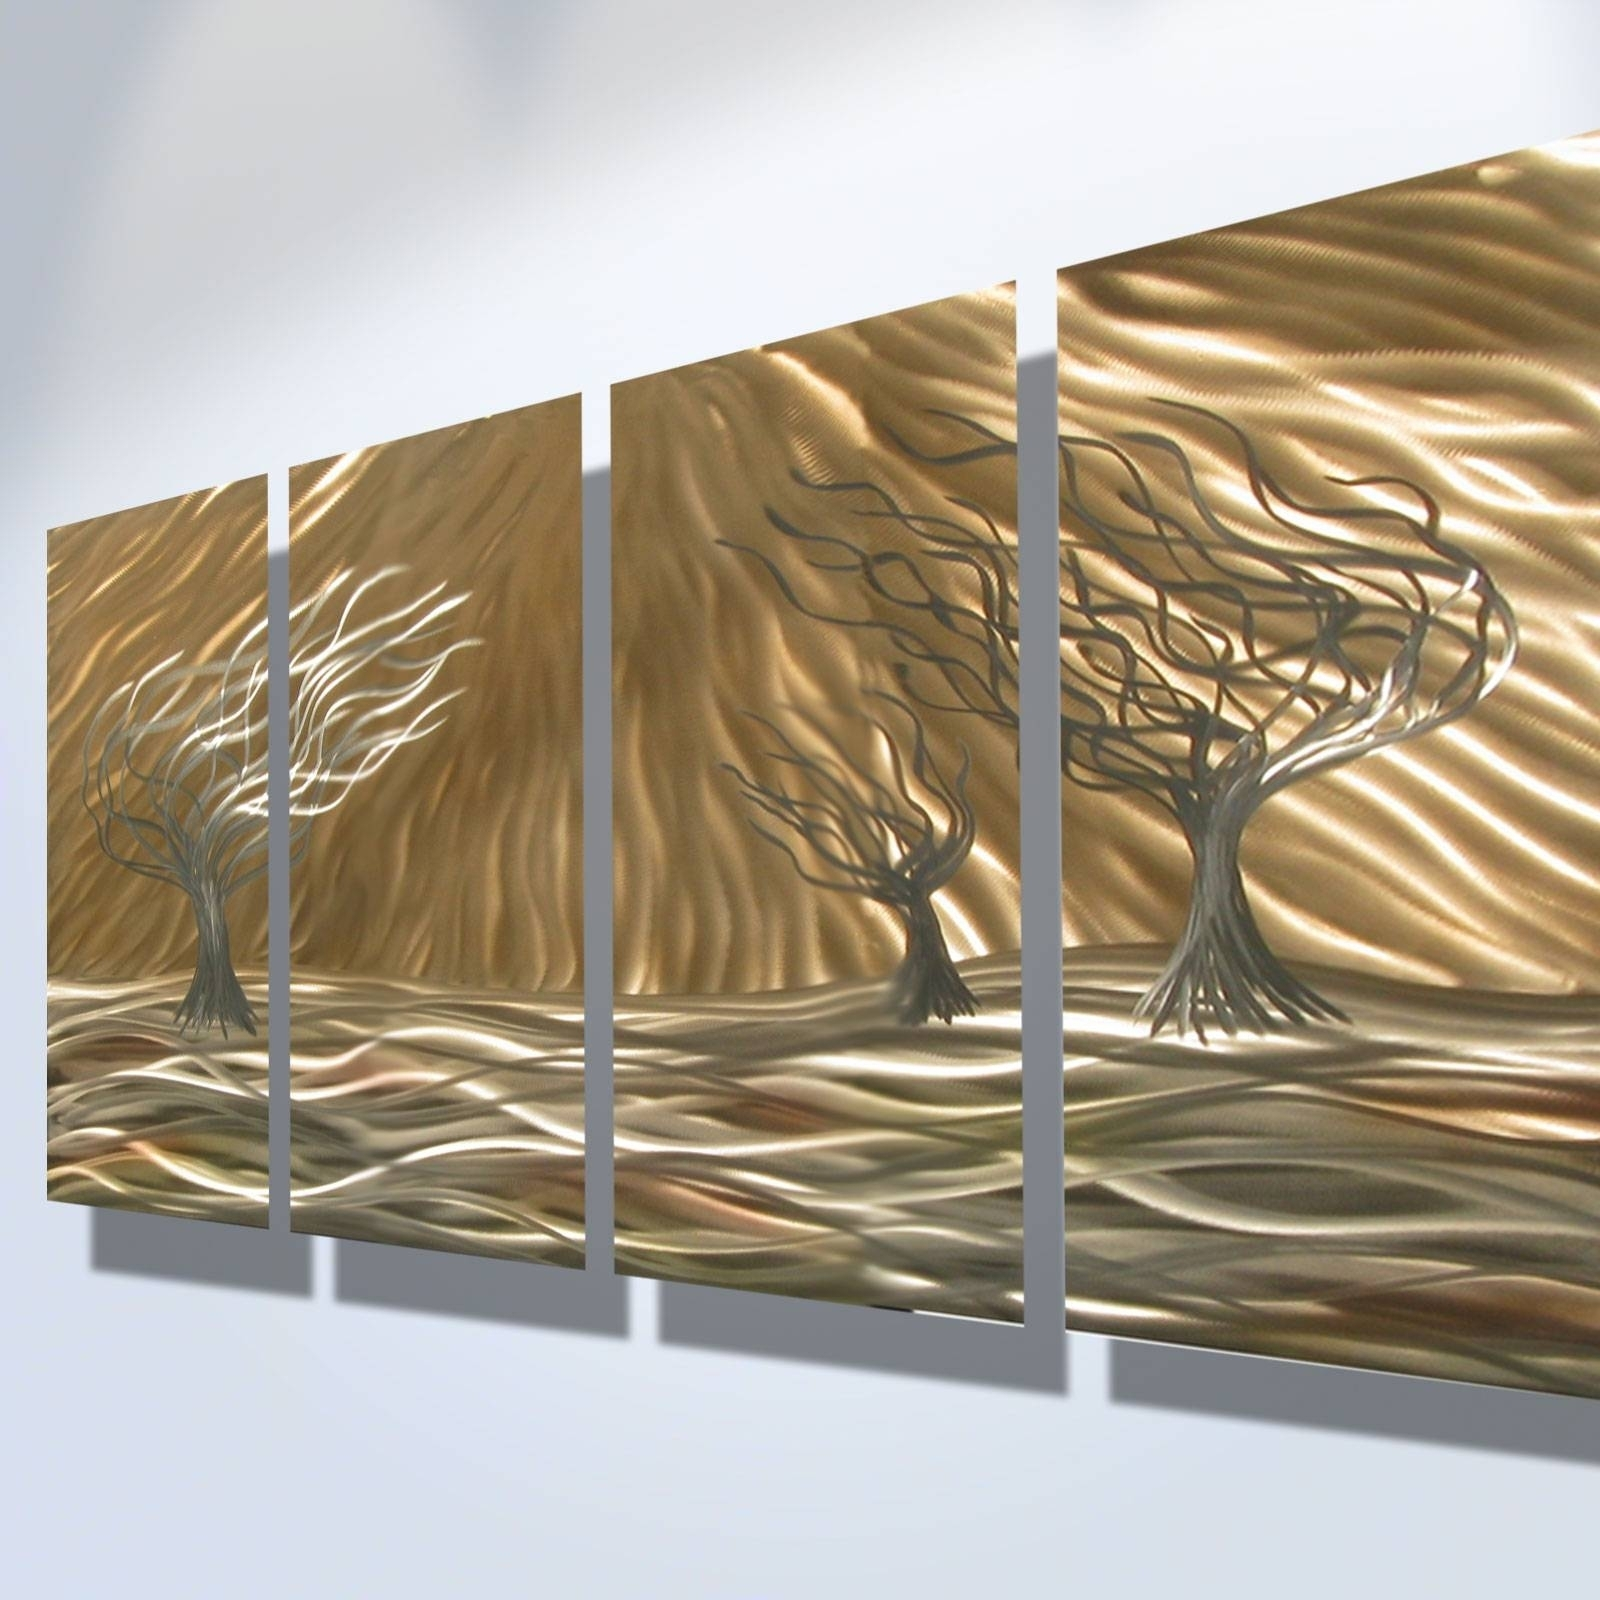 2018 Popular Modern Abstract Metal Wall Art Sculpture Intended For Latest Abstract Metal Sculpture Wall Art (Gallery 6 of 20)